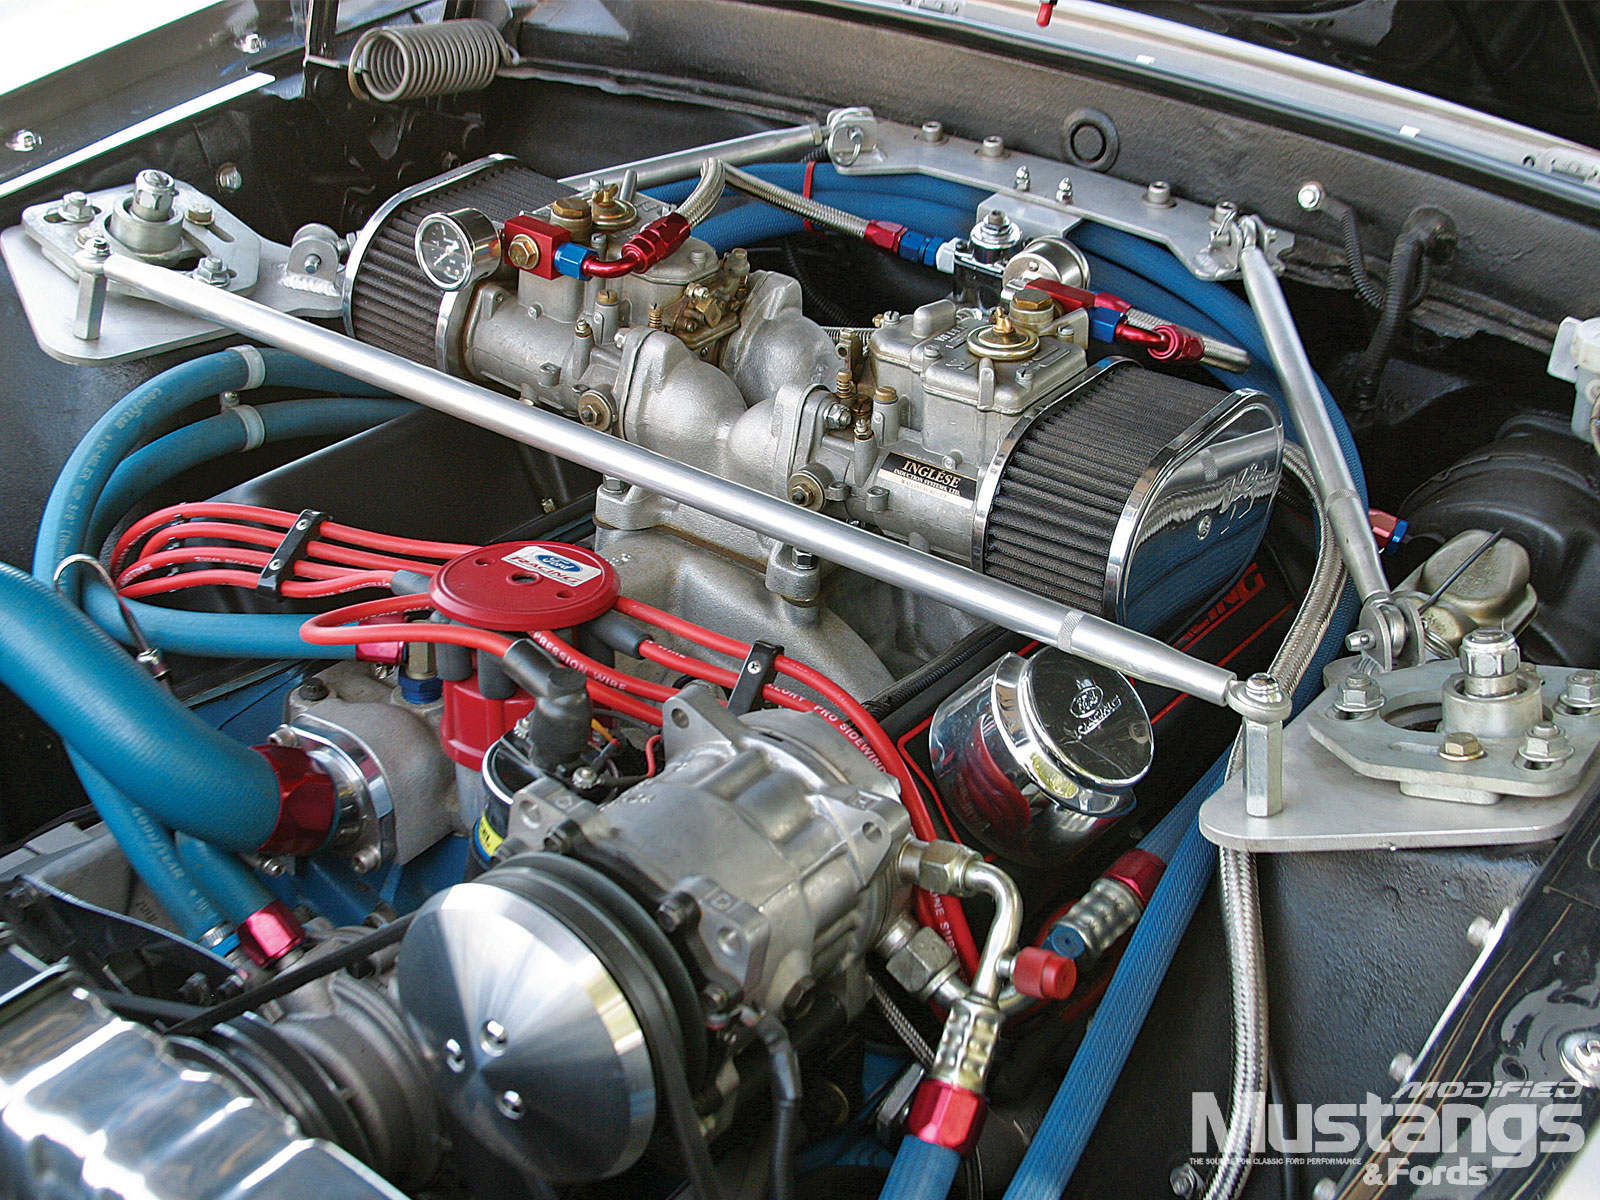 1969 Ford Mustang Gt Sportsroof Engine 3